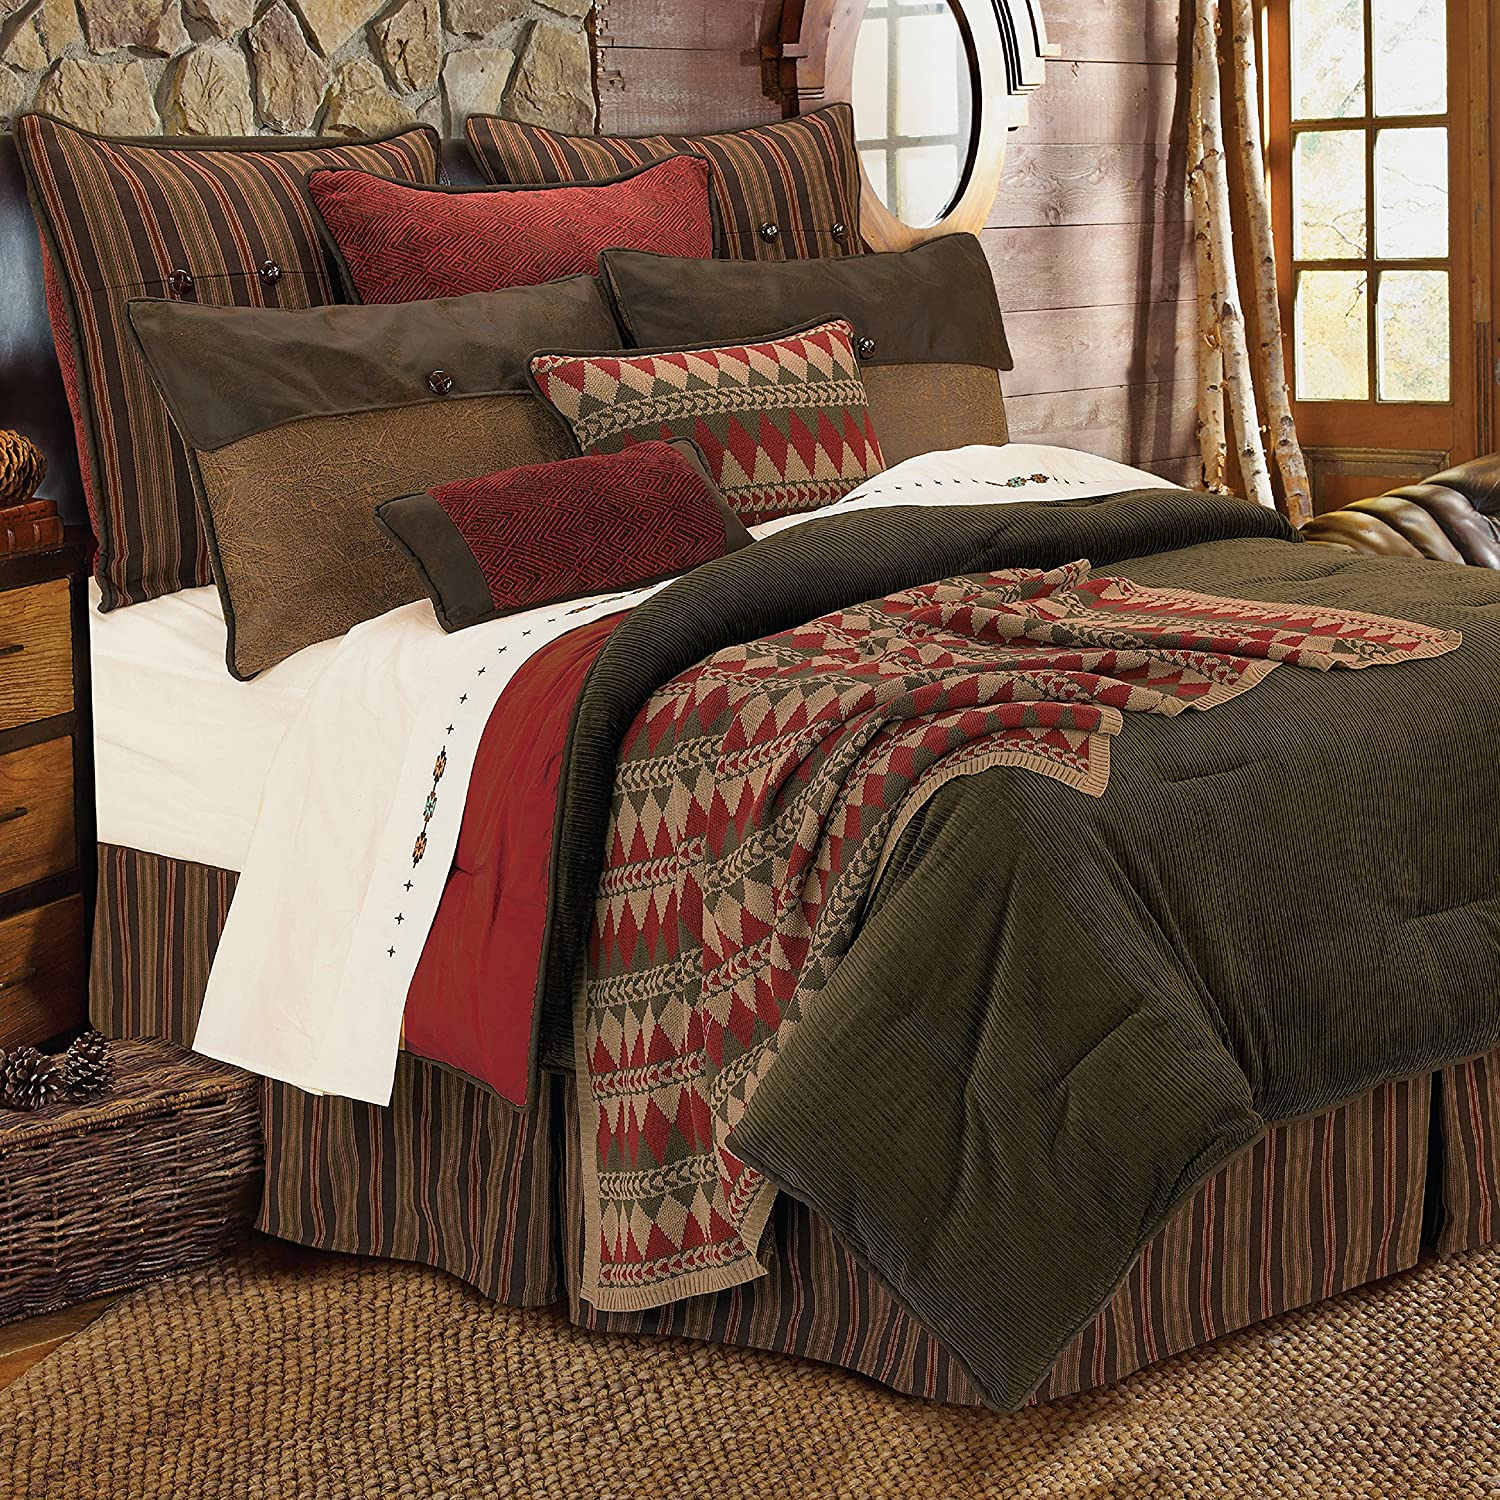 s browning rustic covers whitetails cabin queen kimlor bedding duvet lodge set product comforter